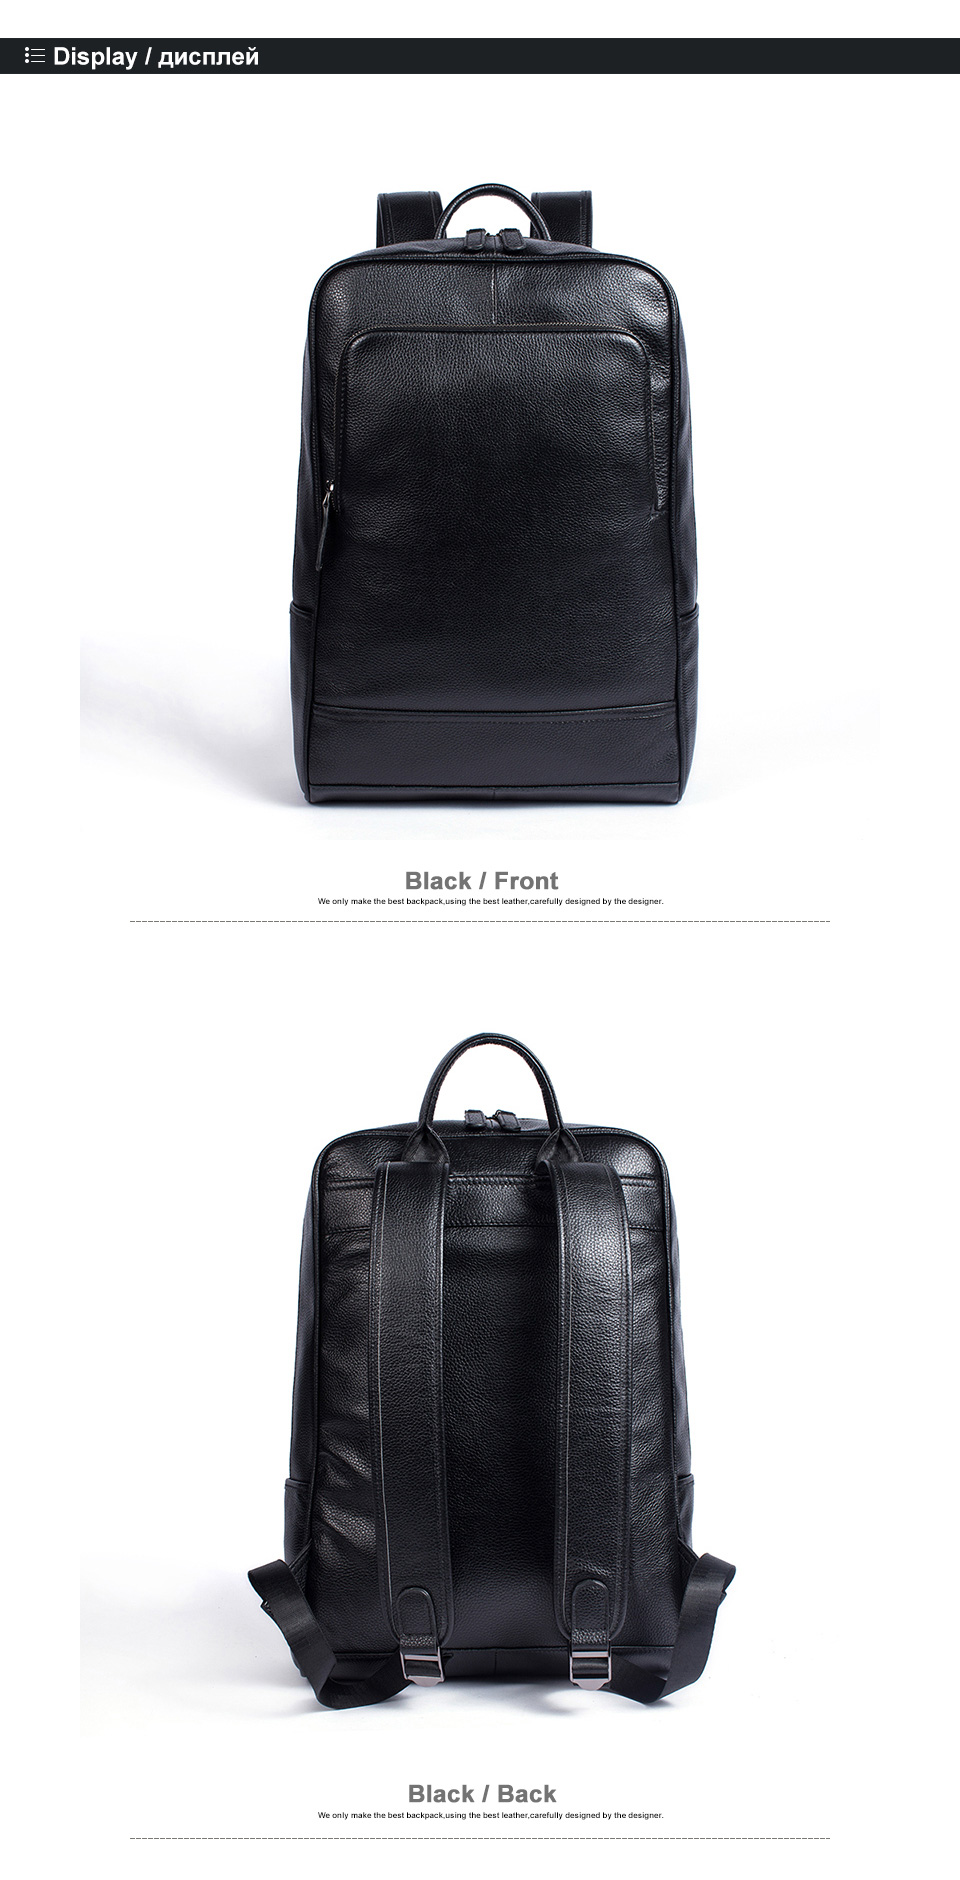 4-laptop backpack